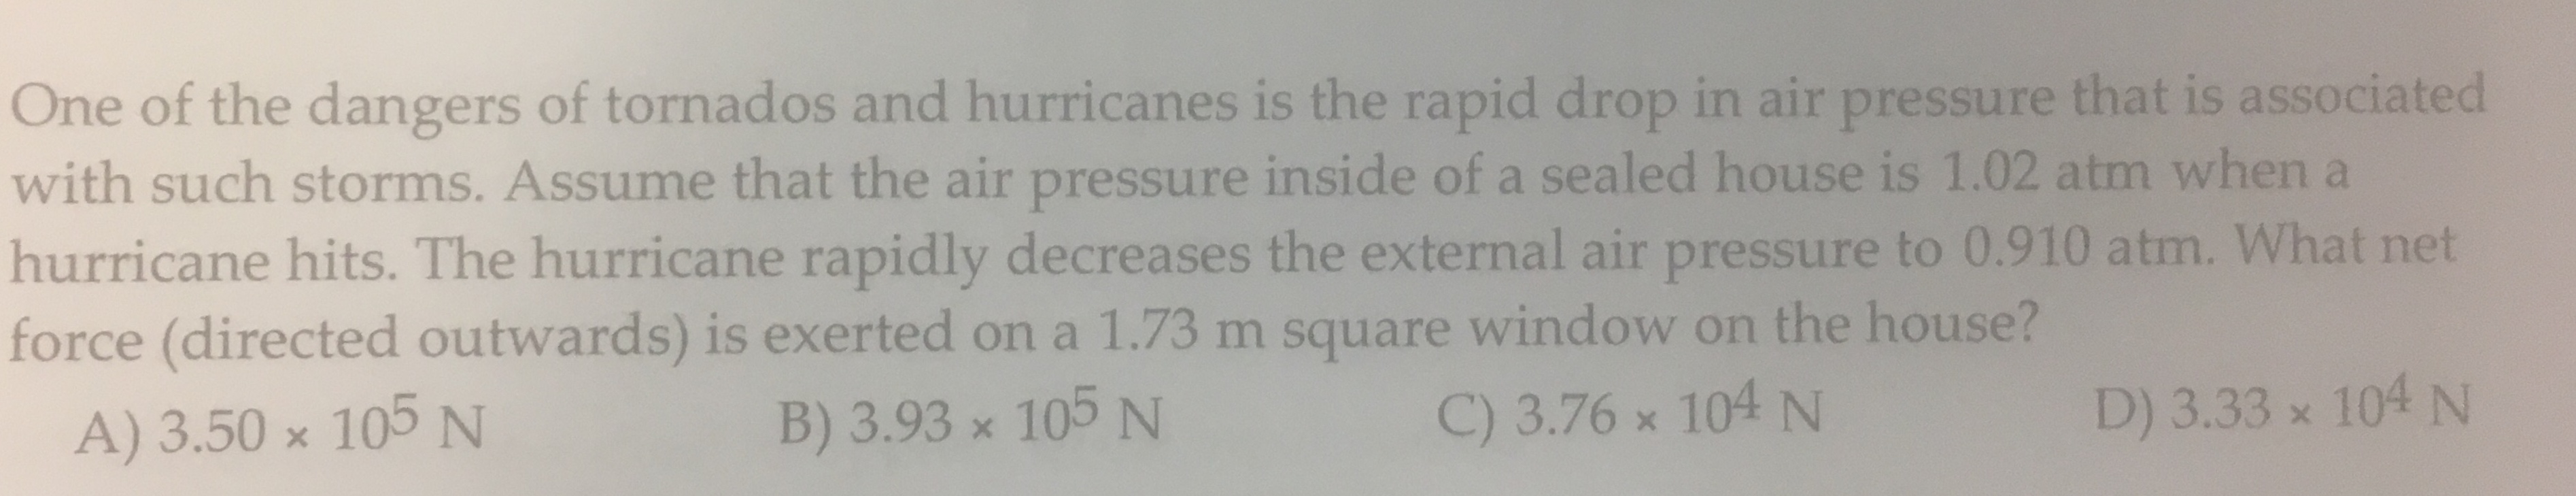 One of the dangers of tornados and hurricanes is the rapid drop in air pressure that is associated with such storms. Assume that the air pressure inside of a sealed house is 1.02 atm when a hurricane hits. The hurricane rapidly decreases the external air pressure to 0.910 atm. What net force (directed outwards) is exerted ona 1.73 m square window on the house? A) 3.50 x 105 N 104 N B) 3.93 x 105 N C) 3.76 x 104 N D) 3.33 x